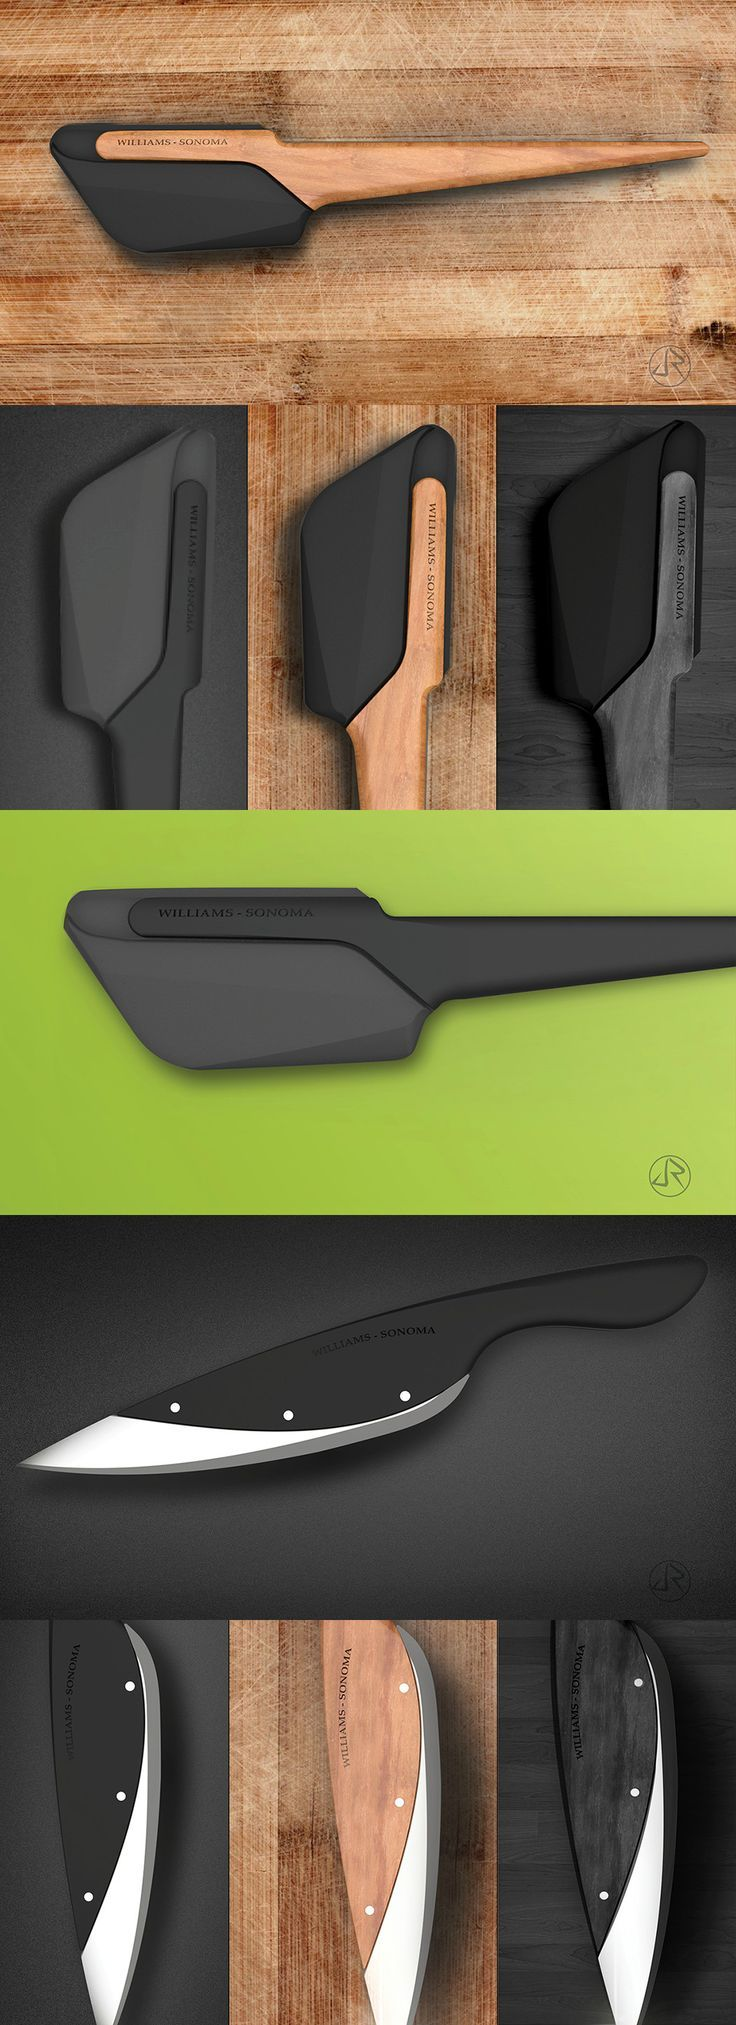 Simply Beautiful Kitchen Tools